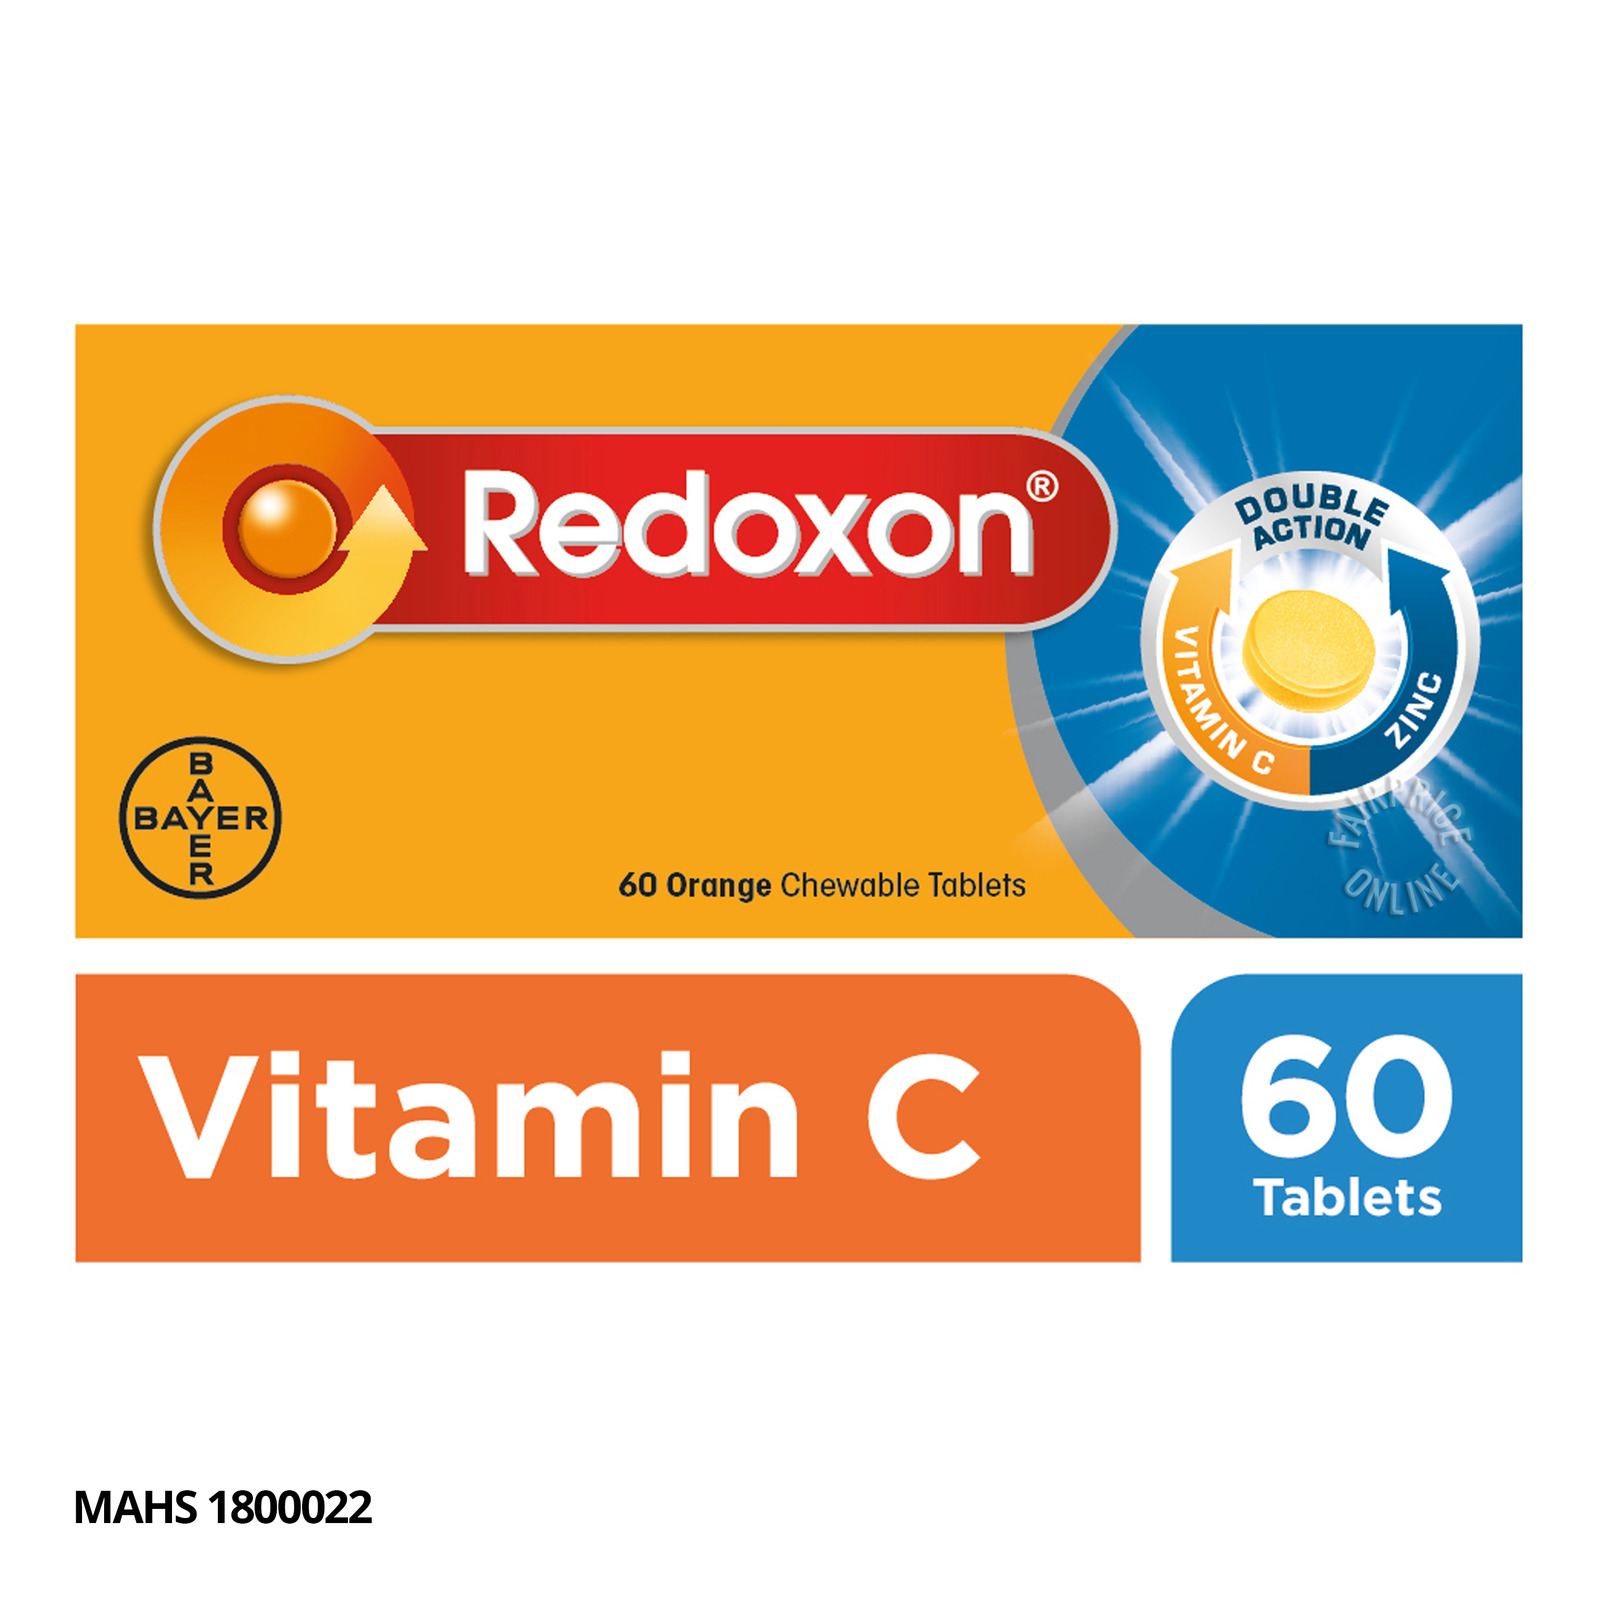 REDOXON double action 500mg 60 chewable tablets